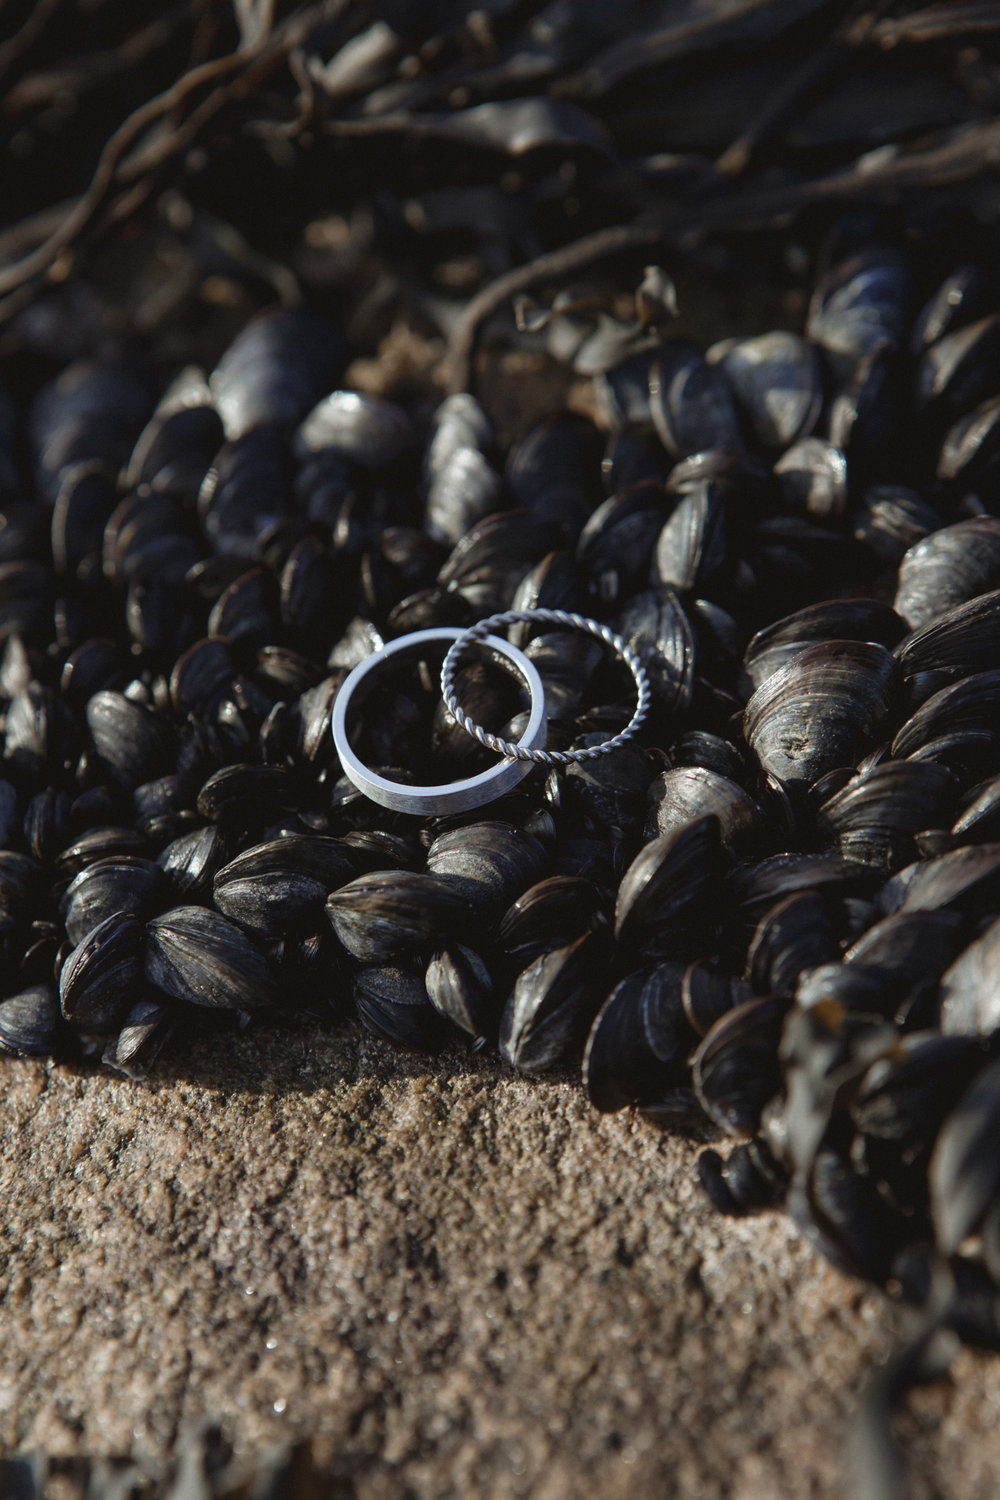 Wedding bands on a blanket of tiny black mussels | New England wedding | Lauren & Tim's wedding | Amy Sims Photography